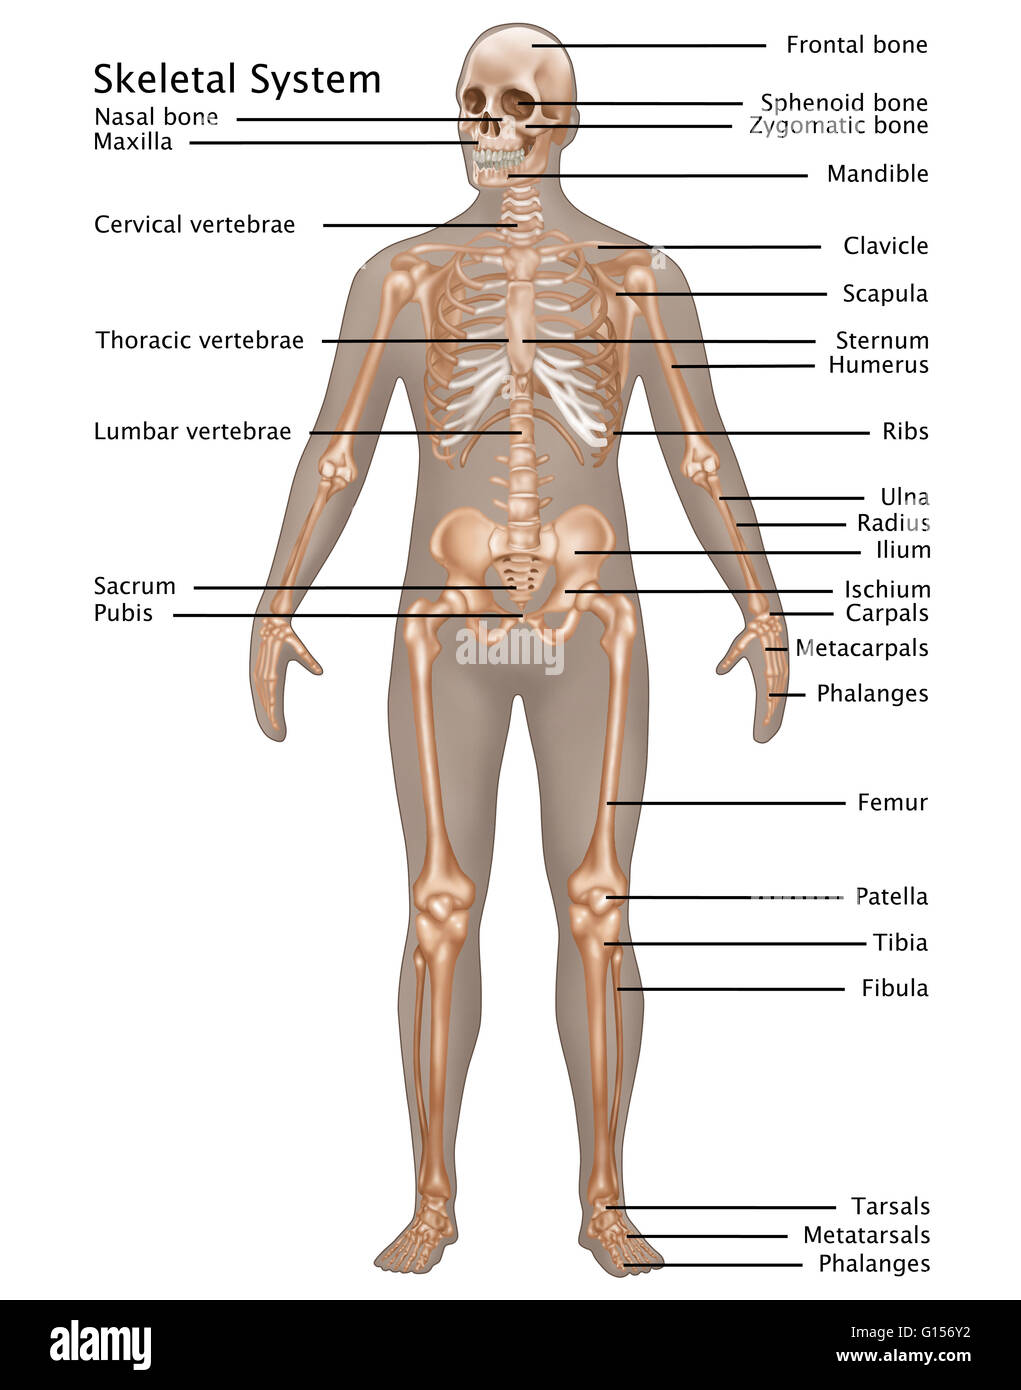 Illustration of the skeletal system in the male anatomy Stock Photo ...